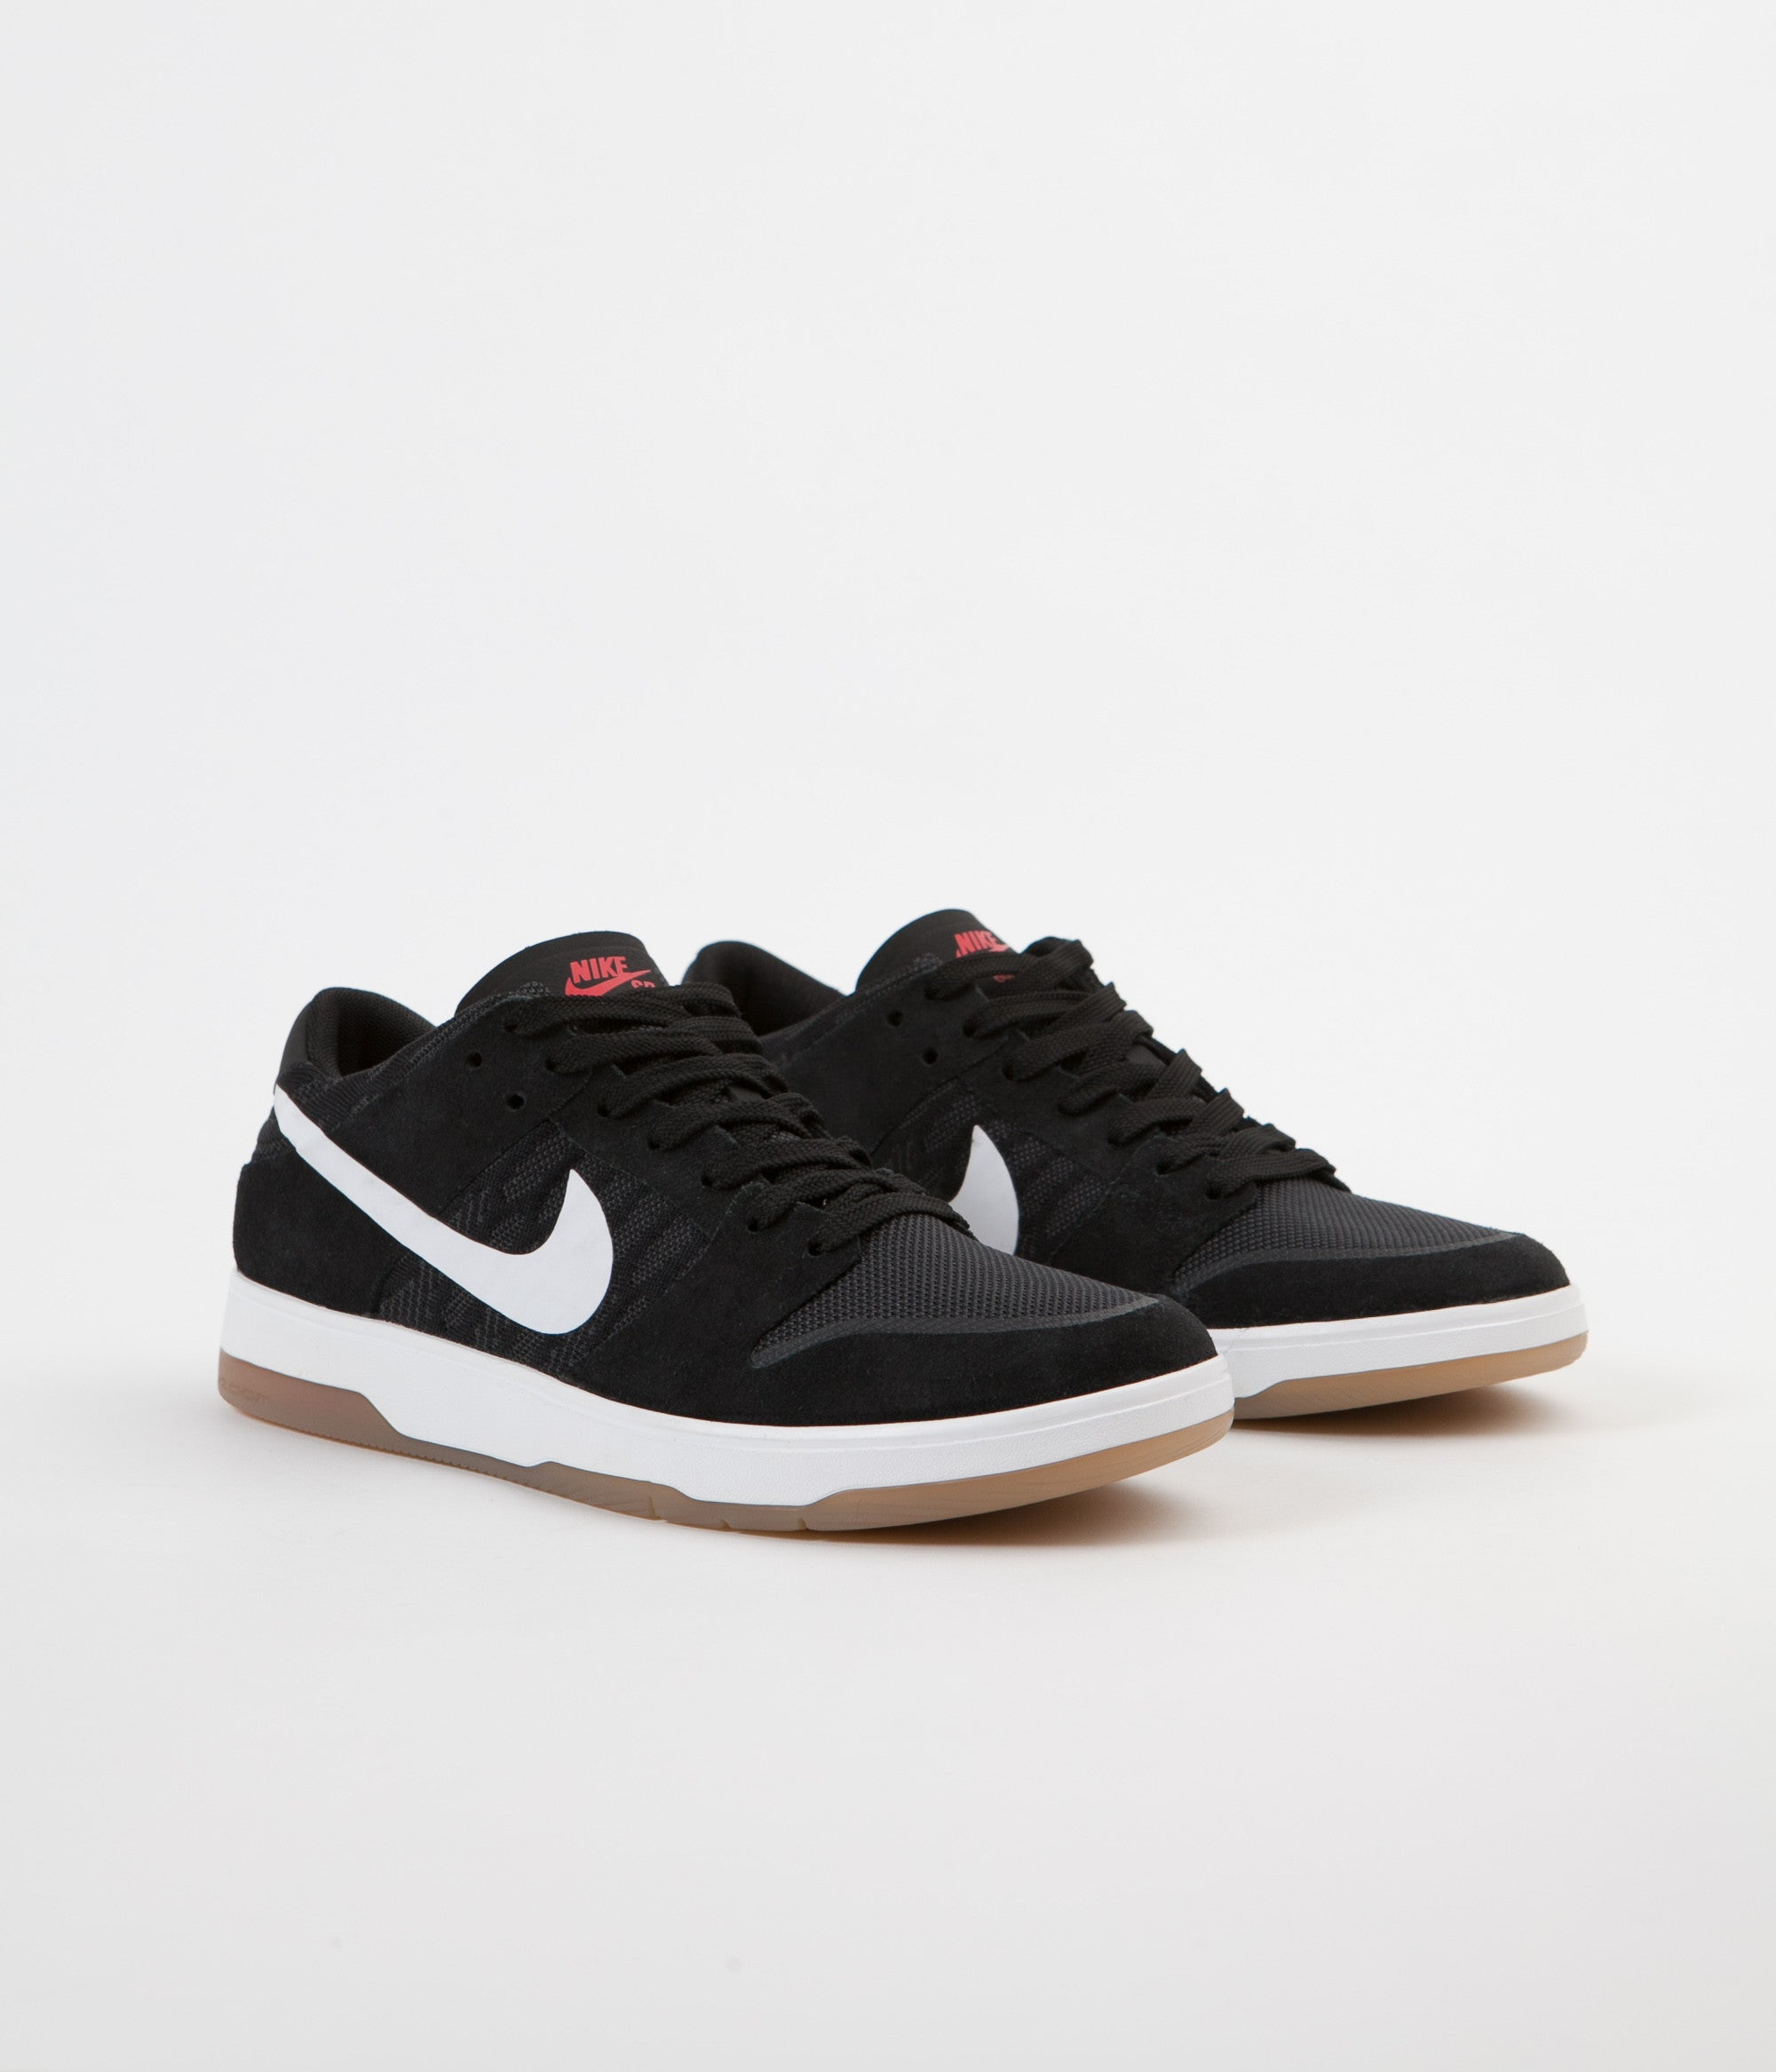 online retailer 2e6fa 8a43a Nike SB Dunk Low Elite Shoes - Black / White - Gum Light ...